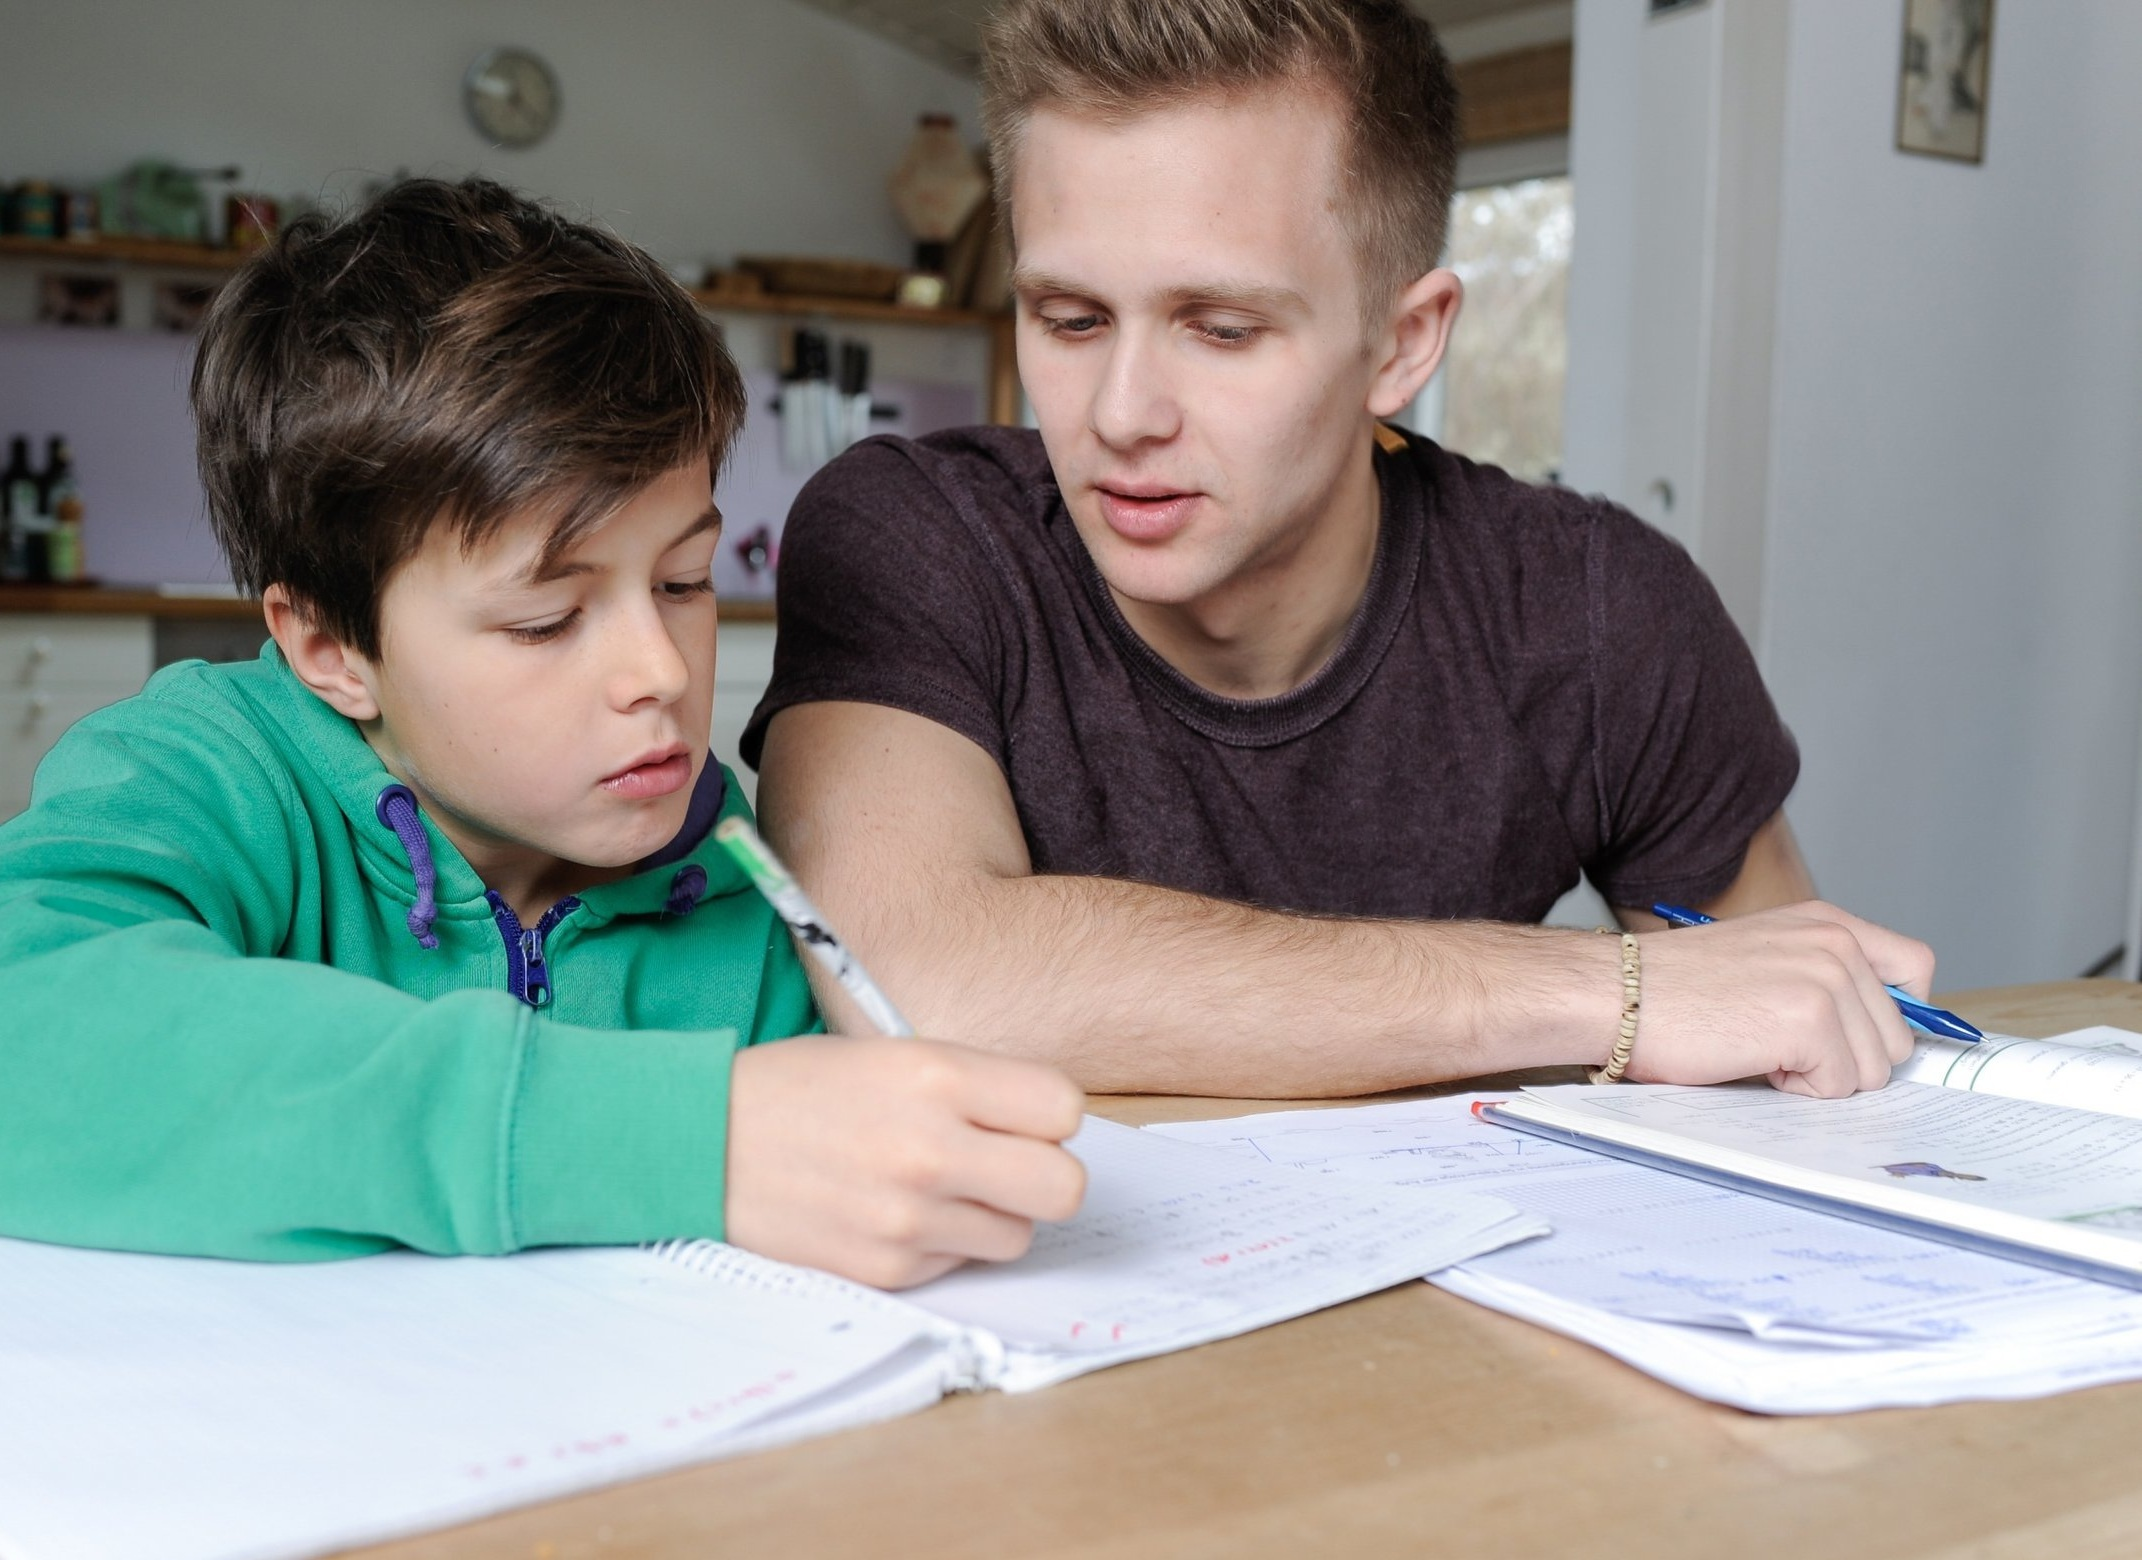 Why High Impact? - We provide high impact tutors in English, Maths and Science across Leicester and the East Midlands. Catering for primary, secondary, A-level and undergraduate students, our friendly, motivating tutors provide one-to-one private tuition that guides them step-by-step to breakthrough understanding of their subjects…Learn More